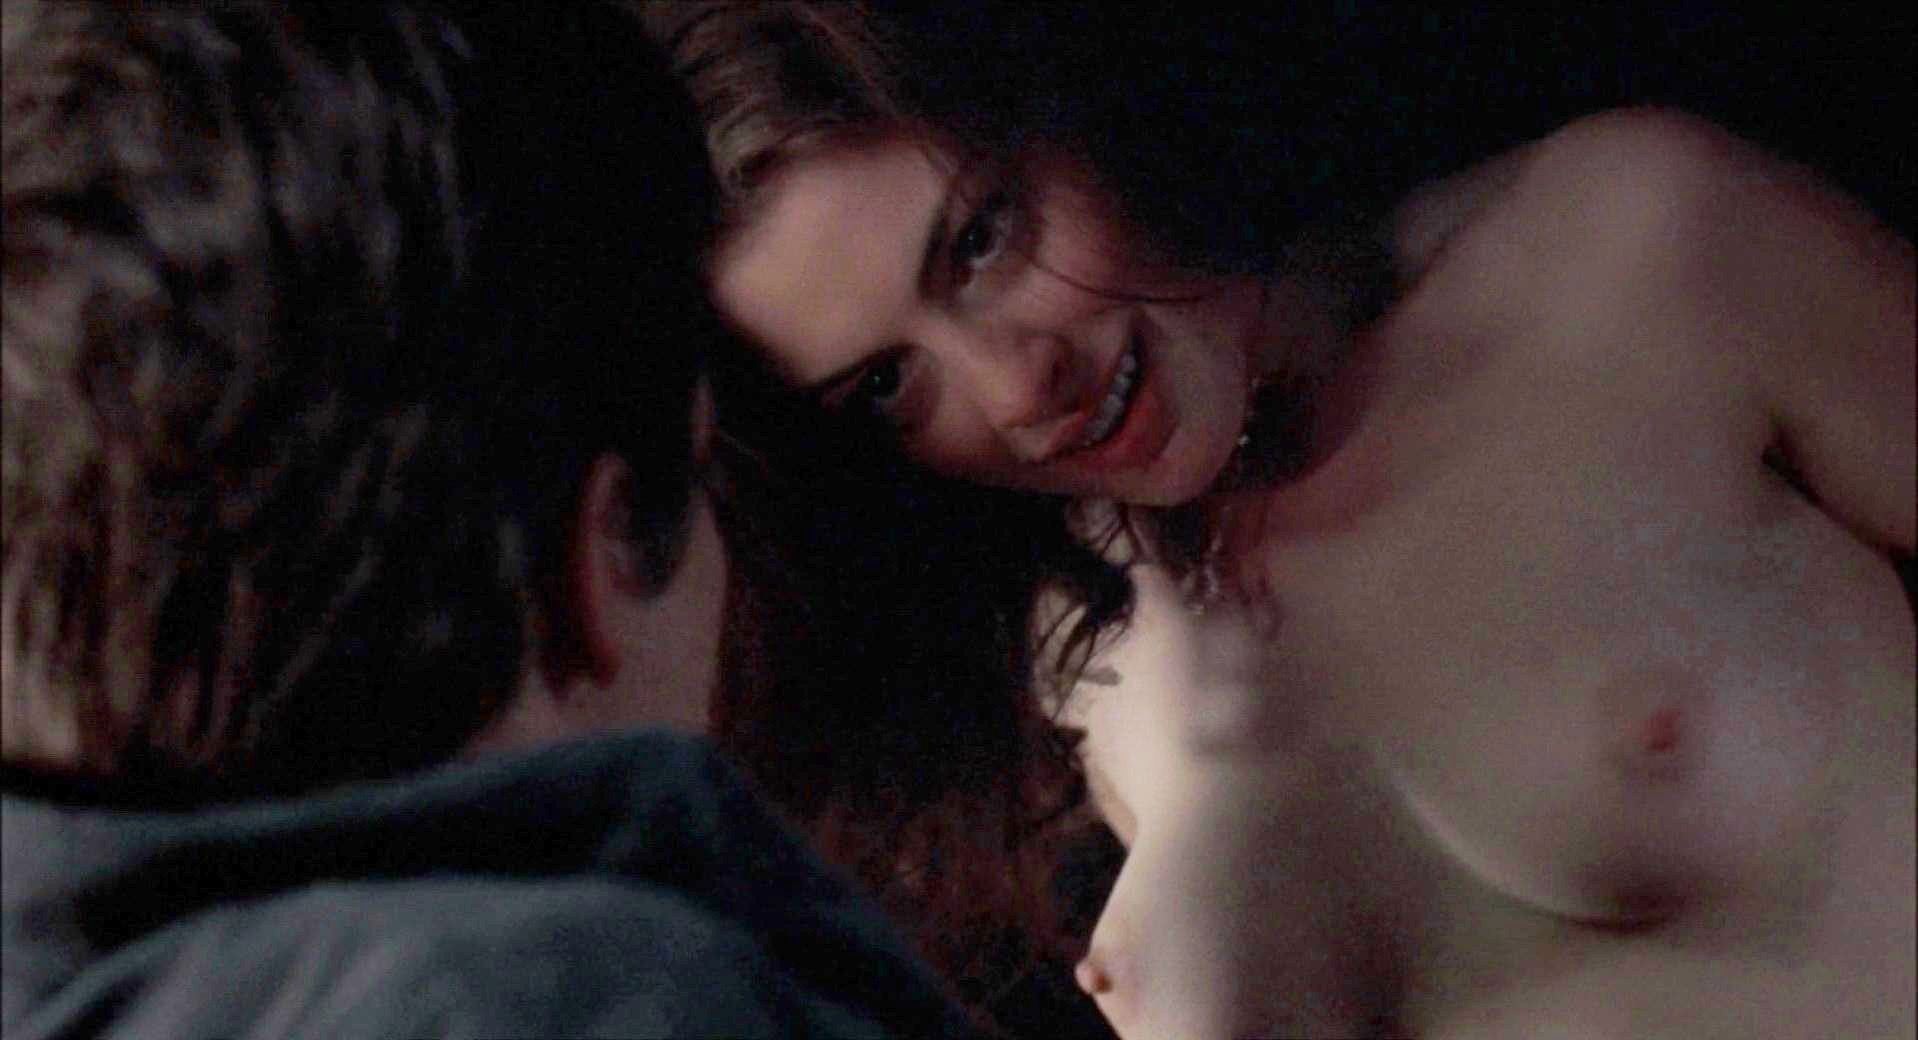 Anne hathaway nude in havoc sex scene